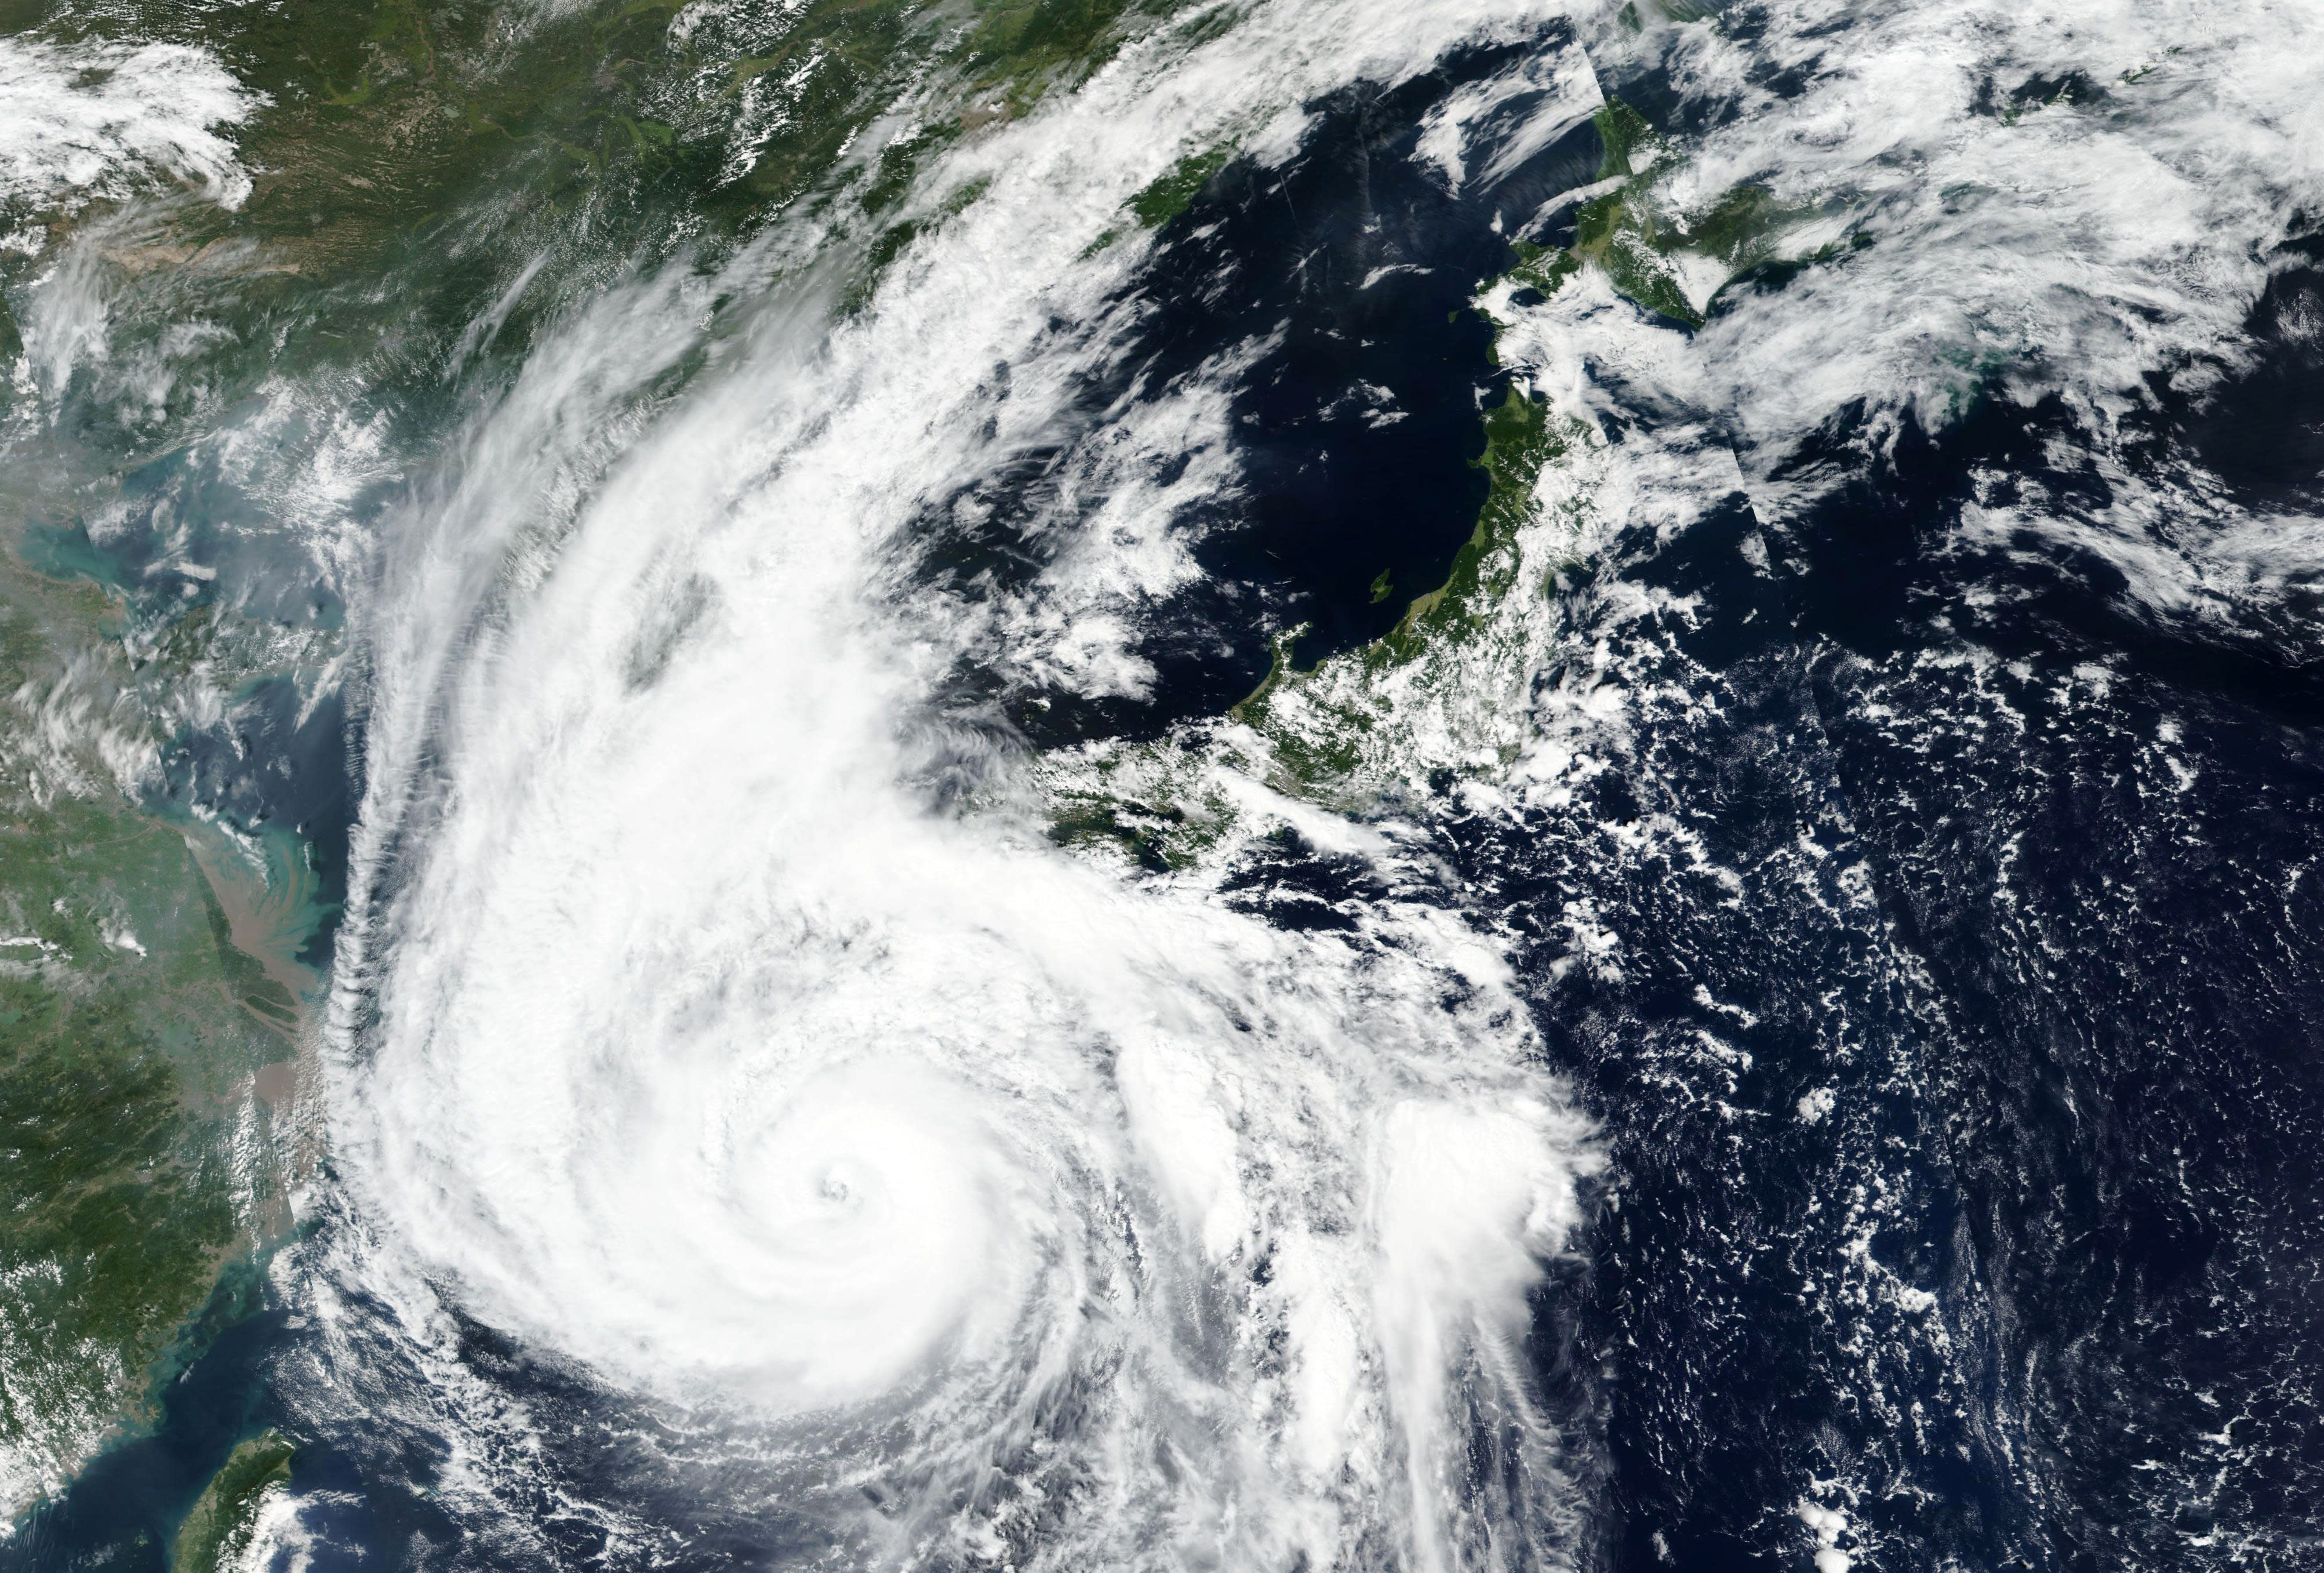 FILE - This Sept. 6, 2020, file satellite image released by NASA Worldview, Earth Observing System Data and Information System (EOSDIS) shows Typhoon Haishen barreling toward the main southwestern island of Kyushu. The second powerful typhoon to slam Japan in a week has unleashed fierce winds and rain on southern islands, blowing off rooftops and leaving homes without power as it edged northward into an area vulnerable to flooding and mudslides. (NASA via AP, File)